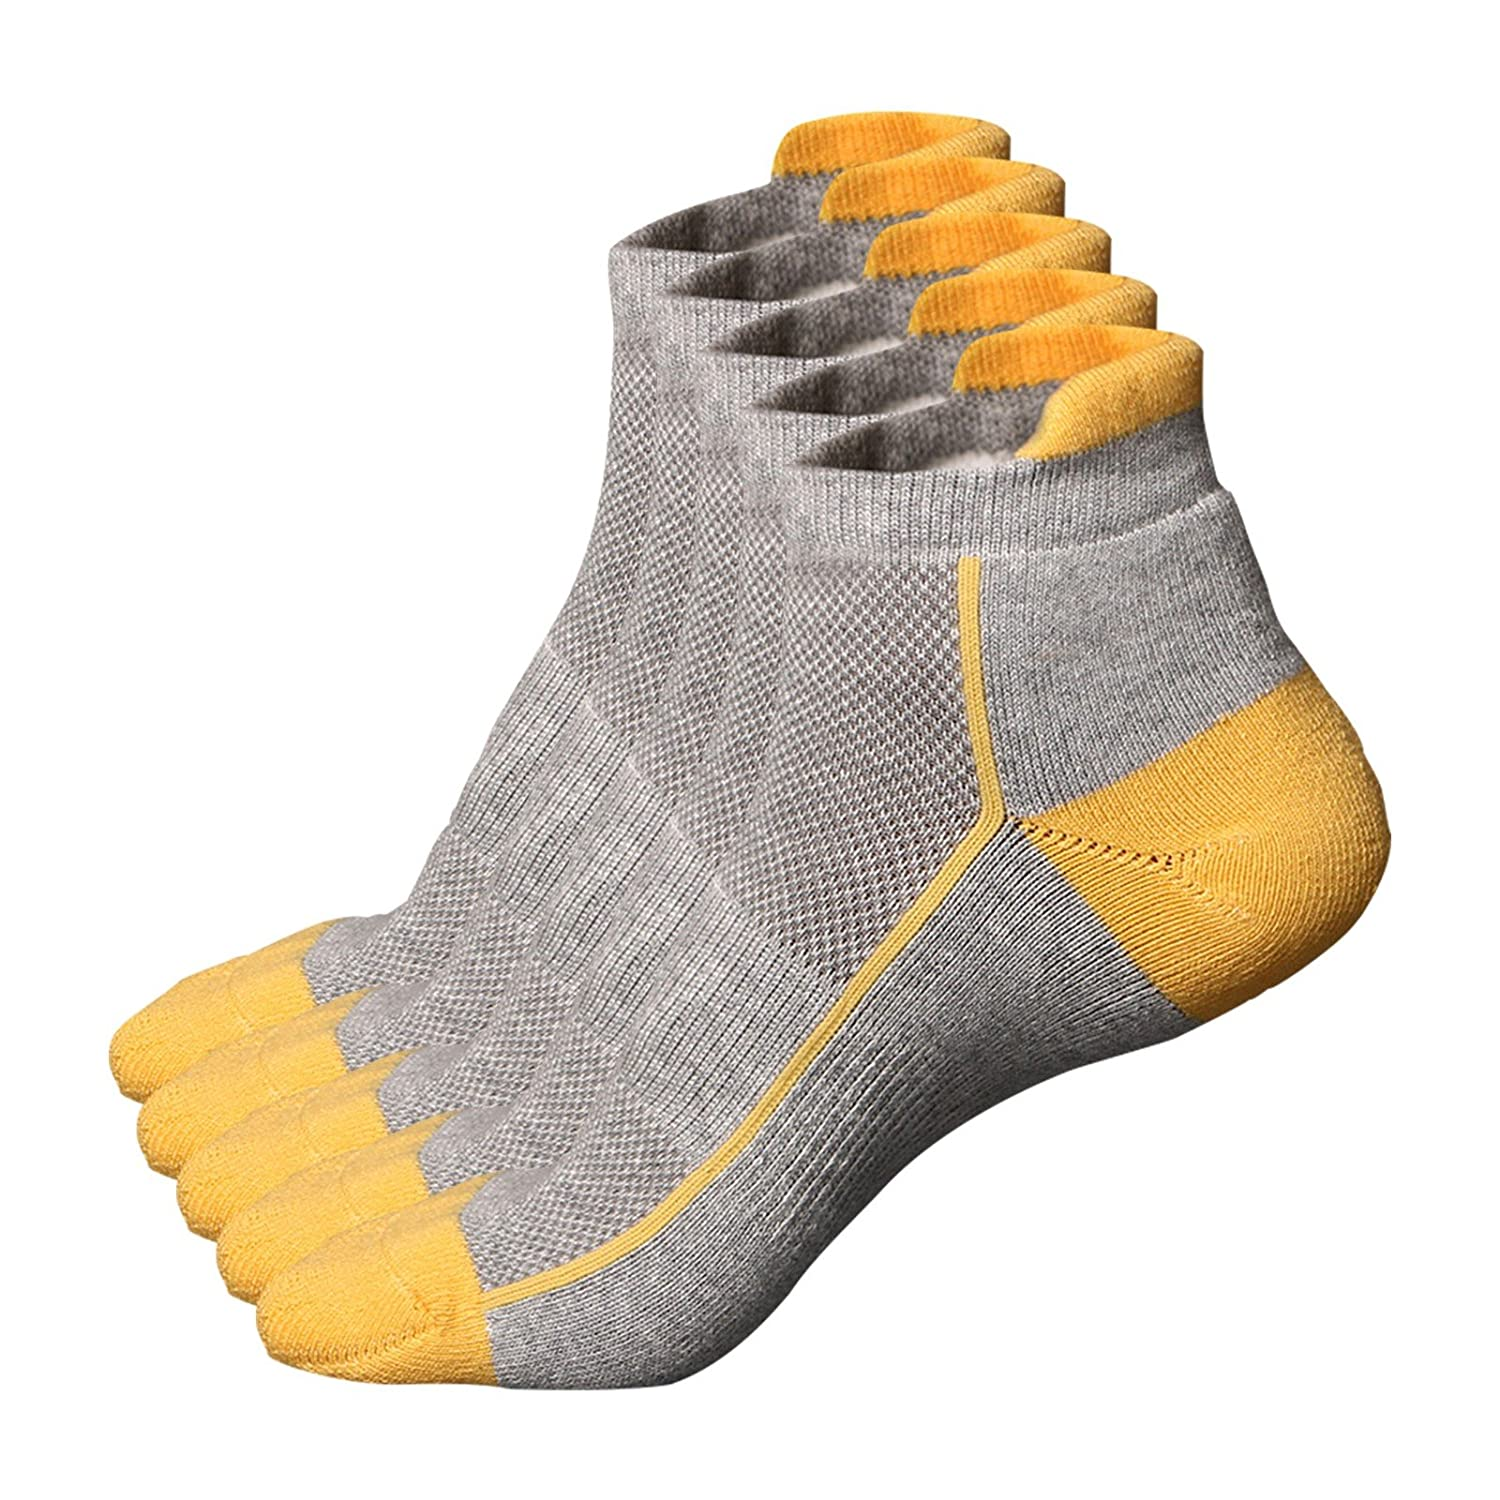 Beauty7 Men Women 5 Pairs Low Cut Thin Athletic Running Tab Socks Heel Ankle High Moisture-Wicking Breathable